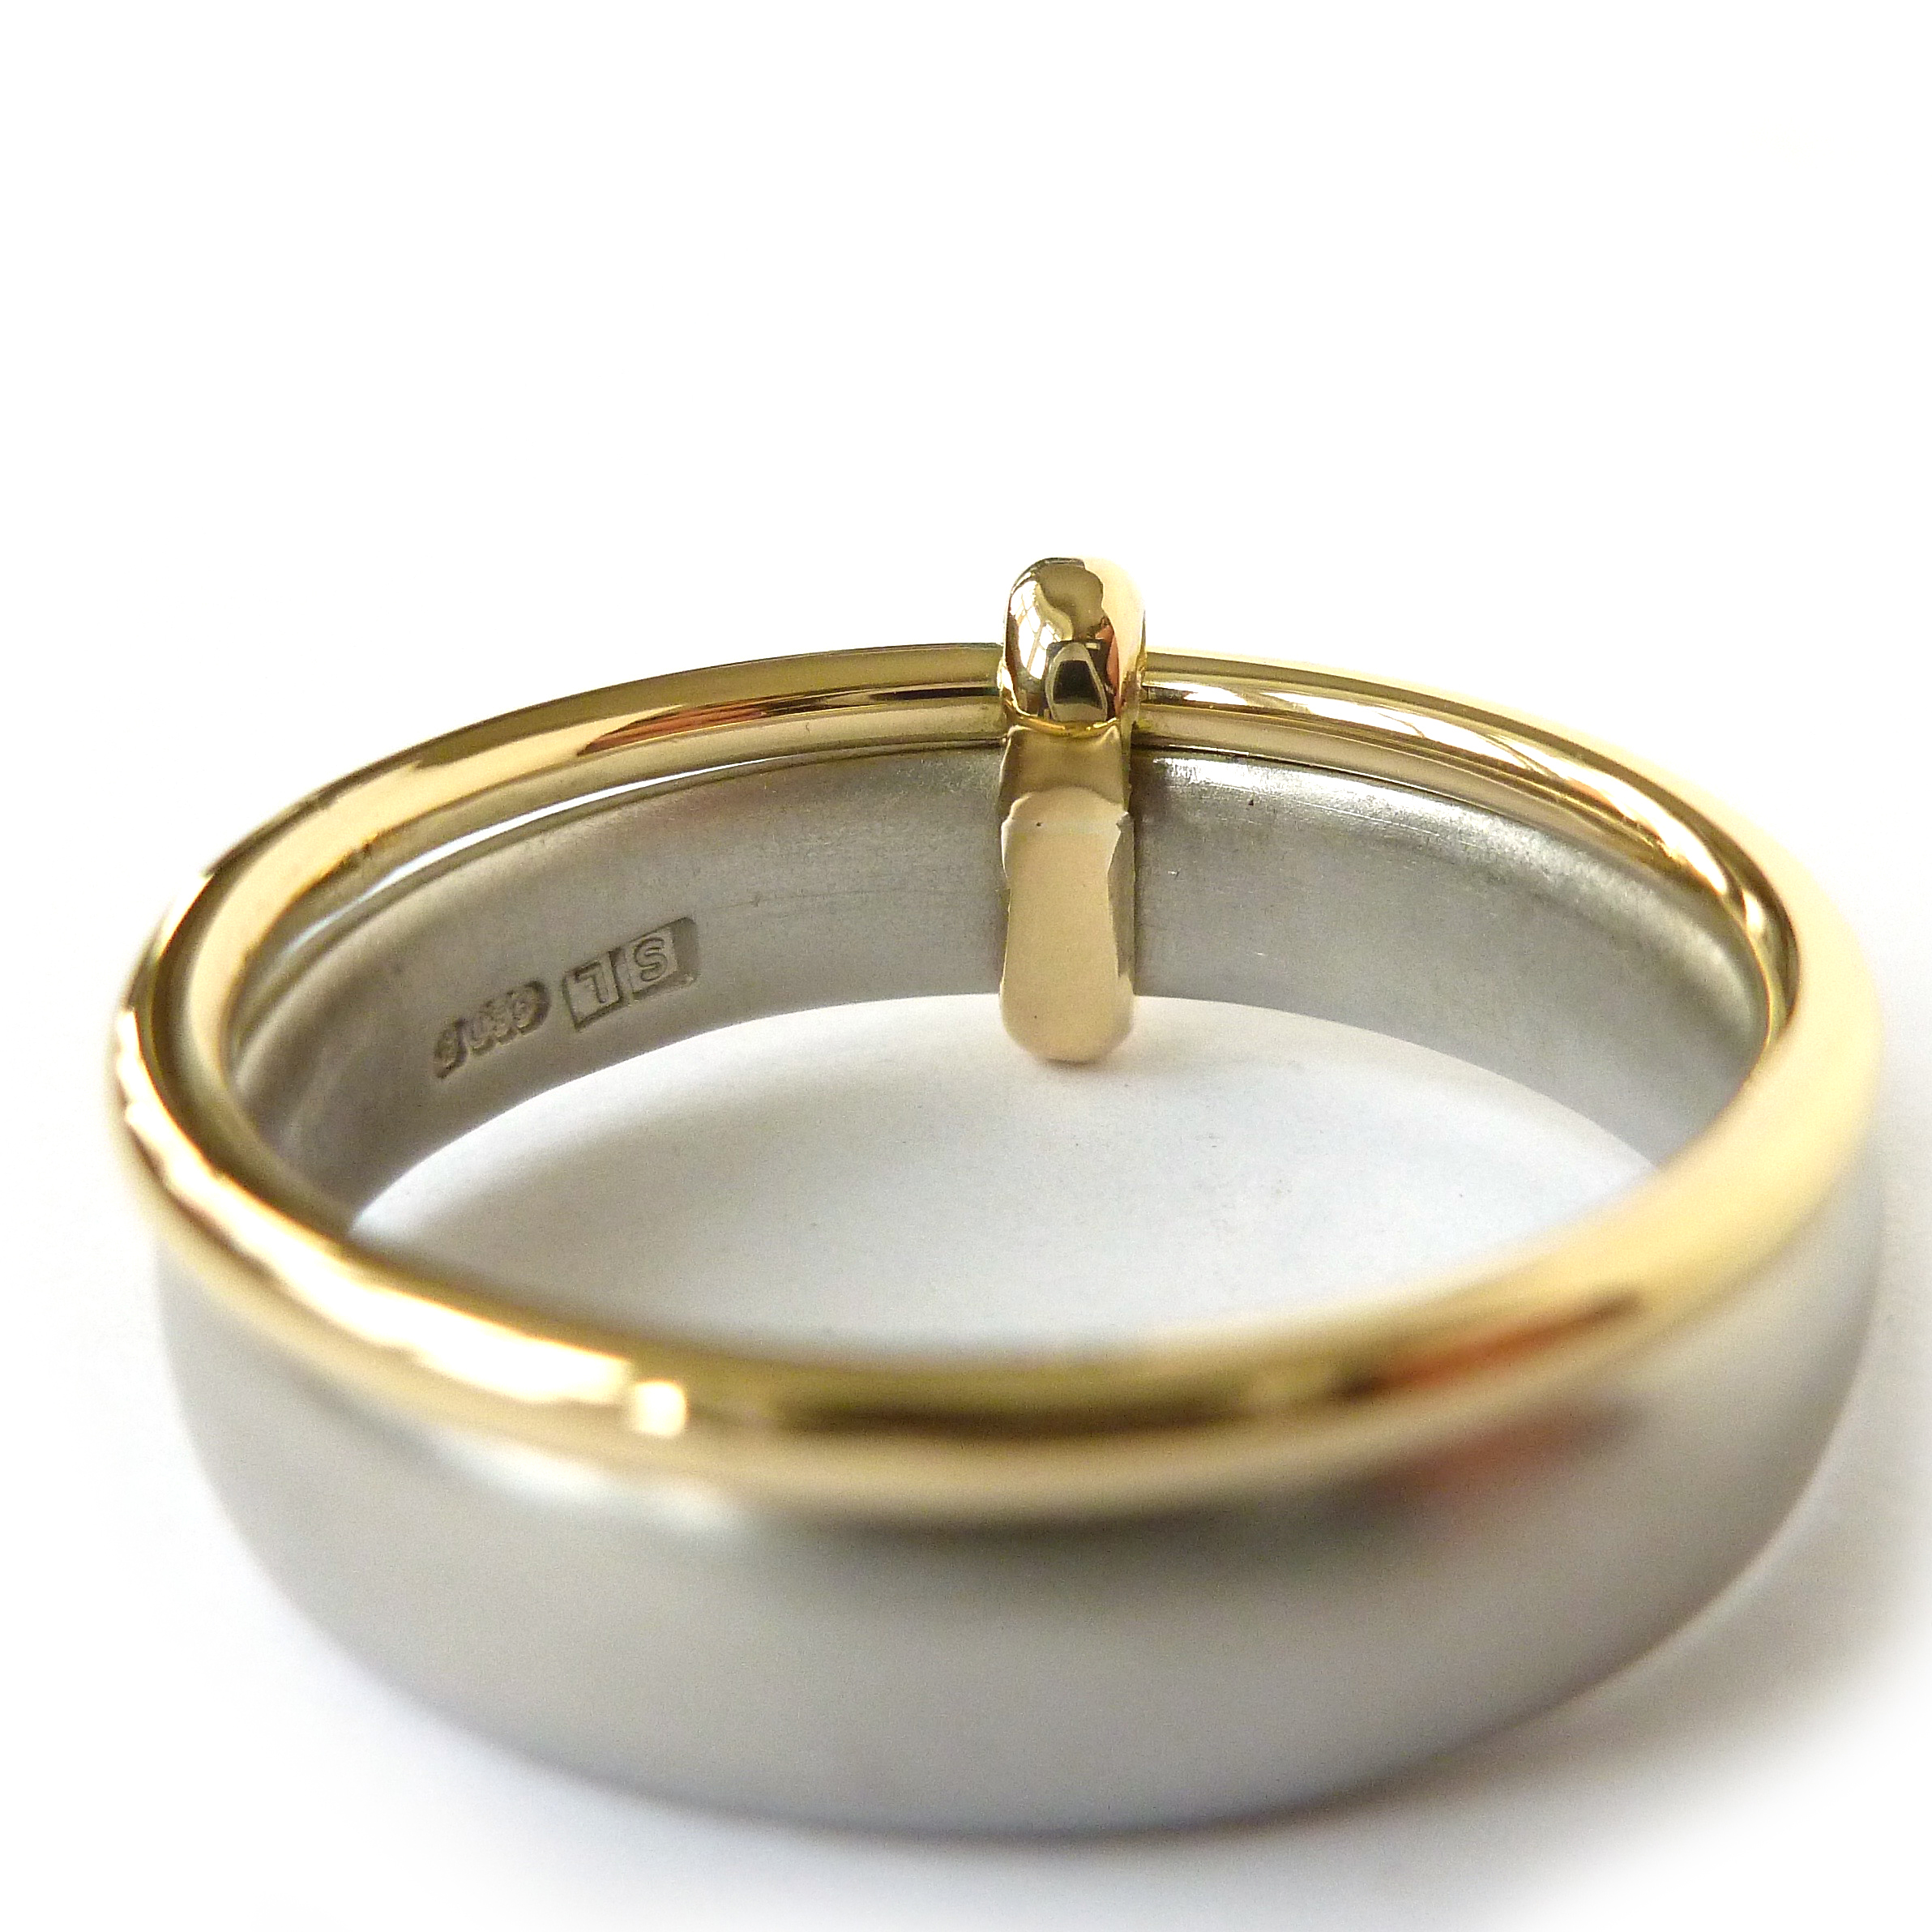 Contemporary Palladium And Gold Wedding Ring For Men Or Women